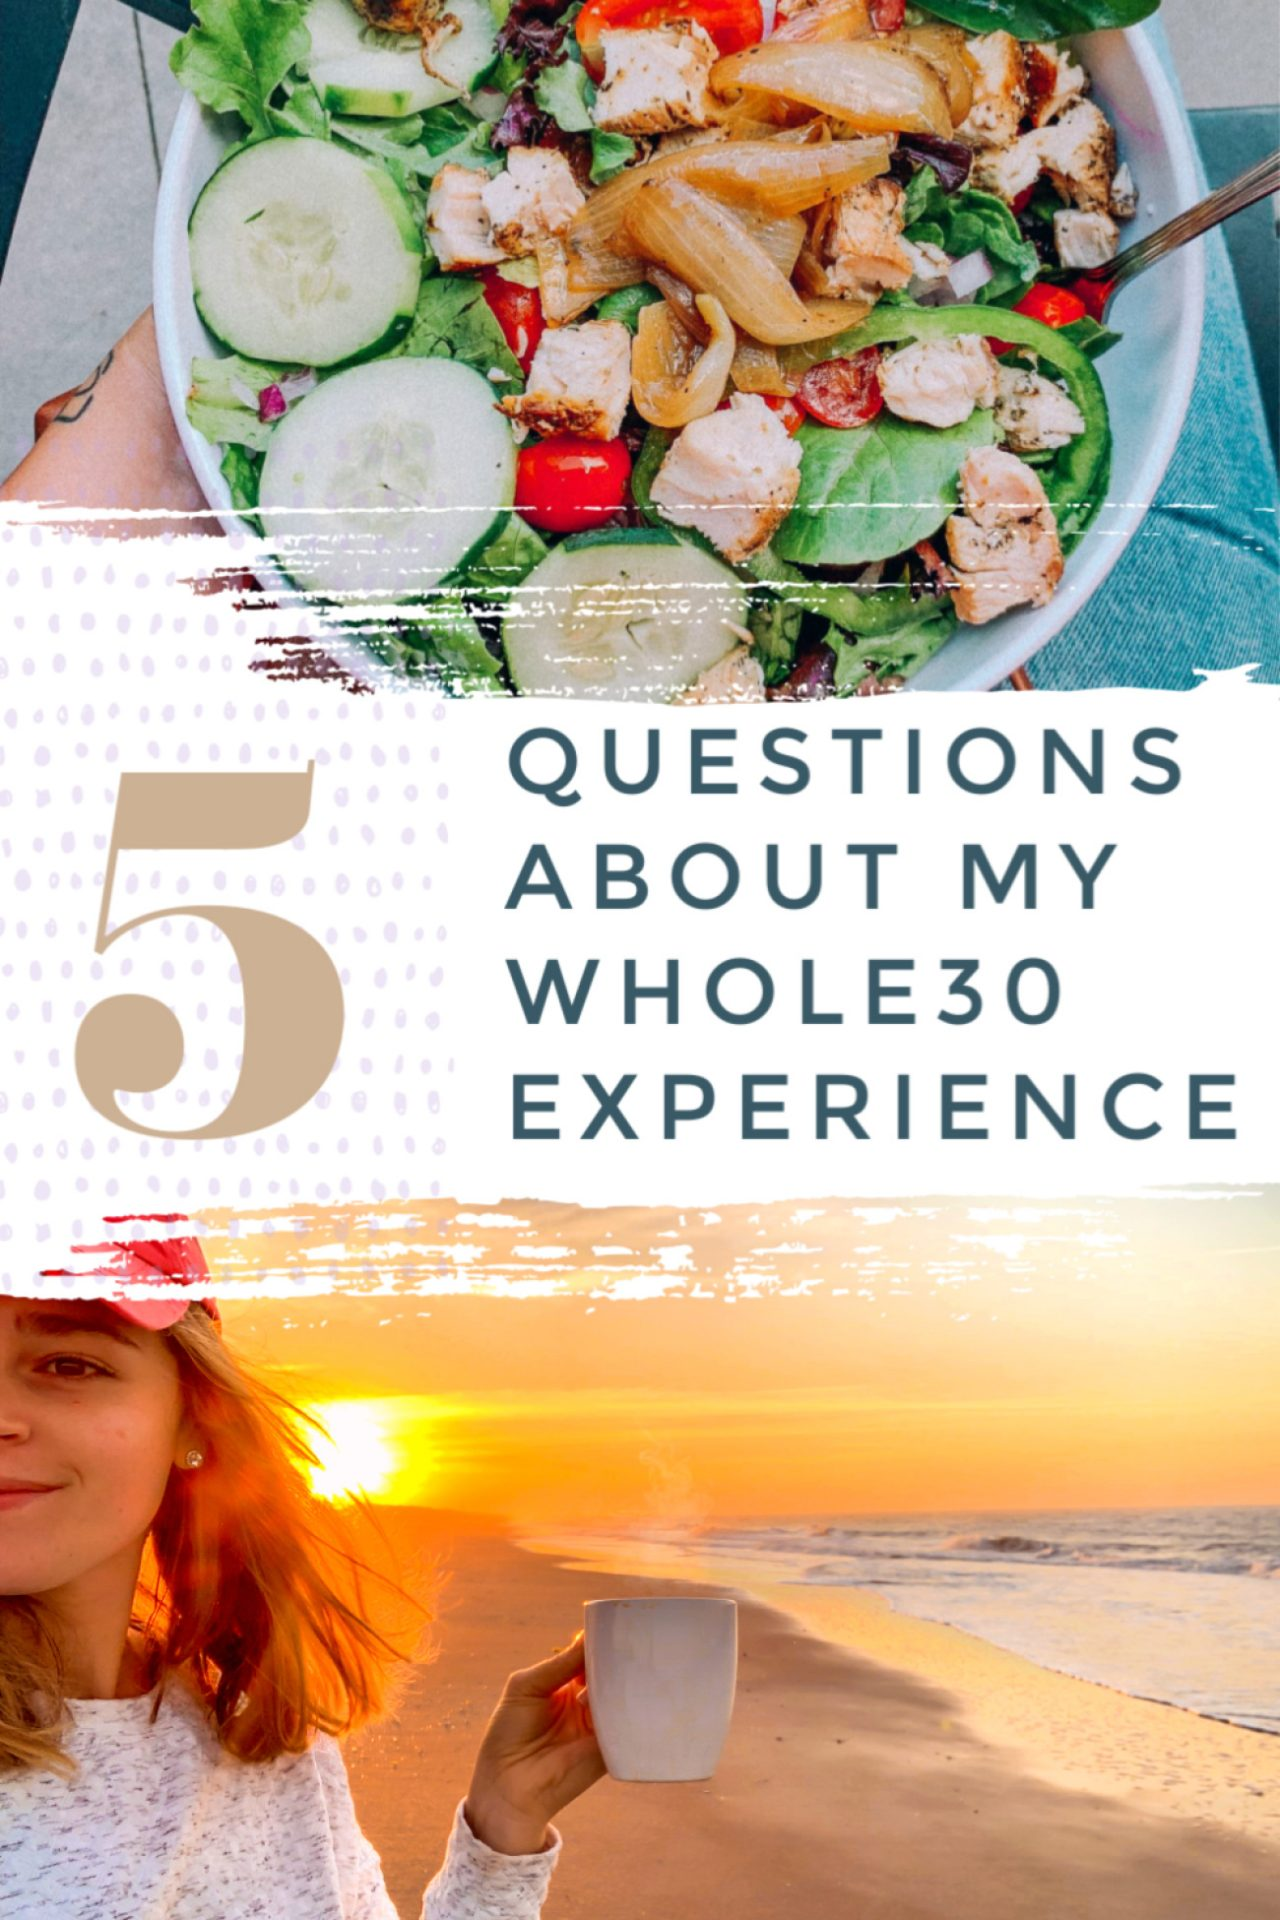 DAY ONE WHOLE30, whole30 diet, whole30 plan, whole30 results, what whole30 did for me, my whole30 journey, 30 days of whole30 , what I ate